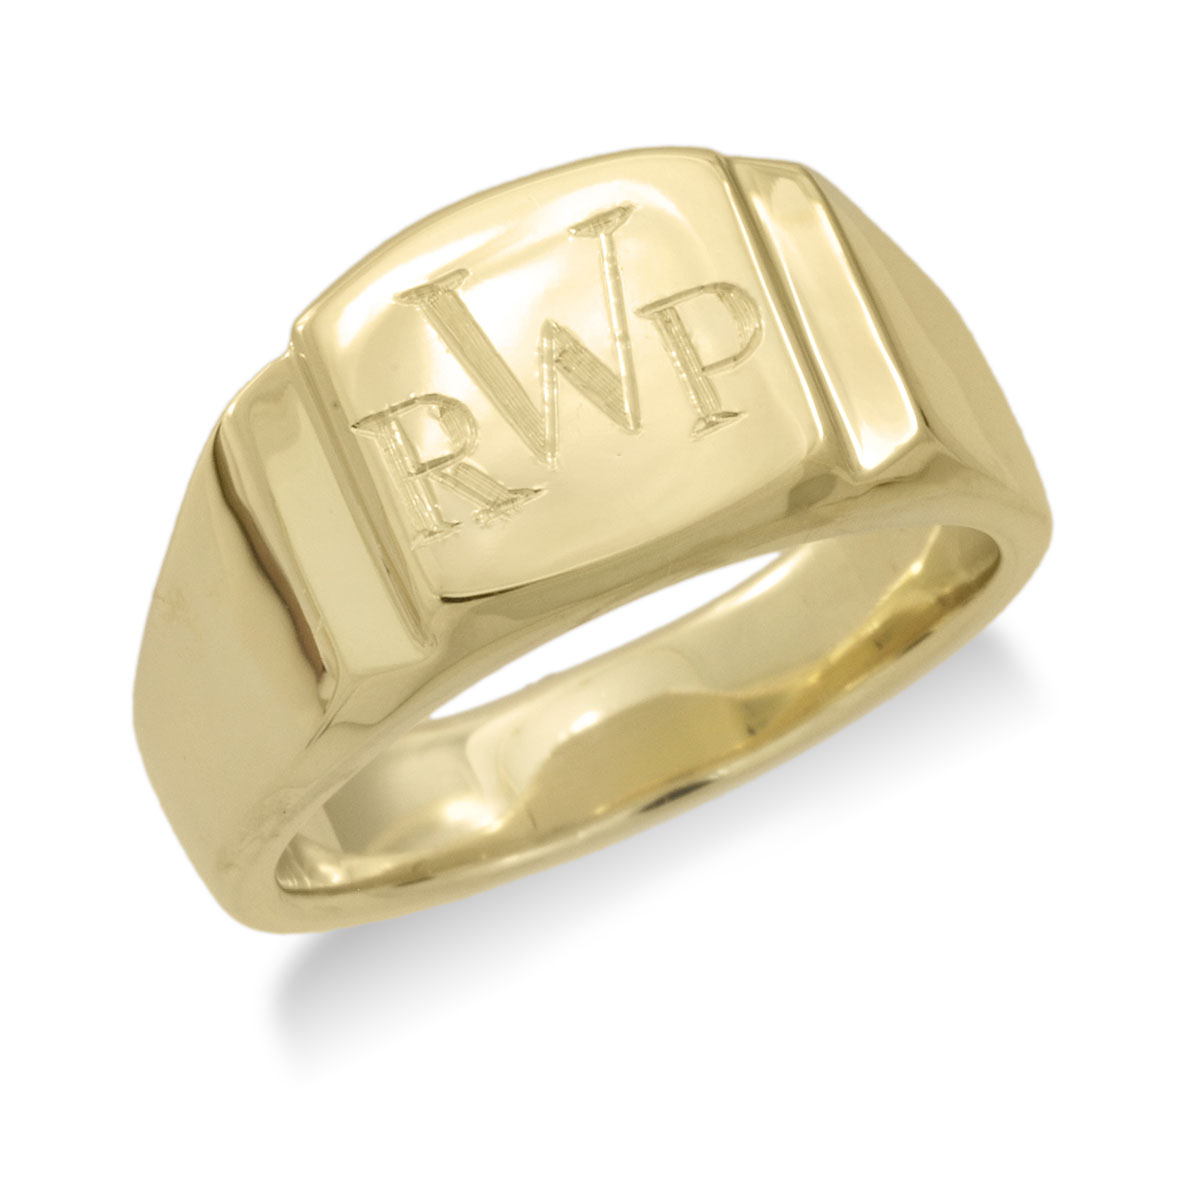 MR015 Men's Signet Ring